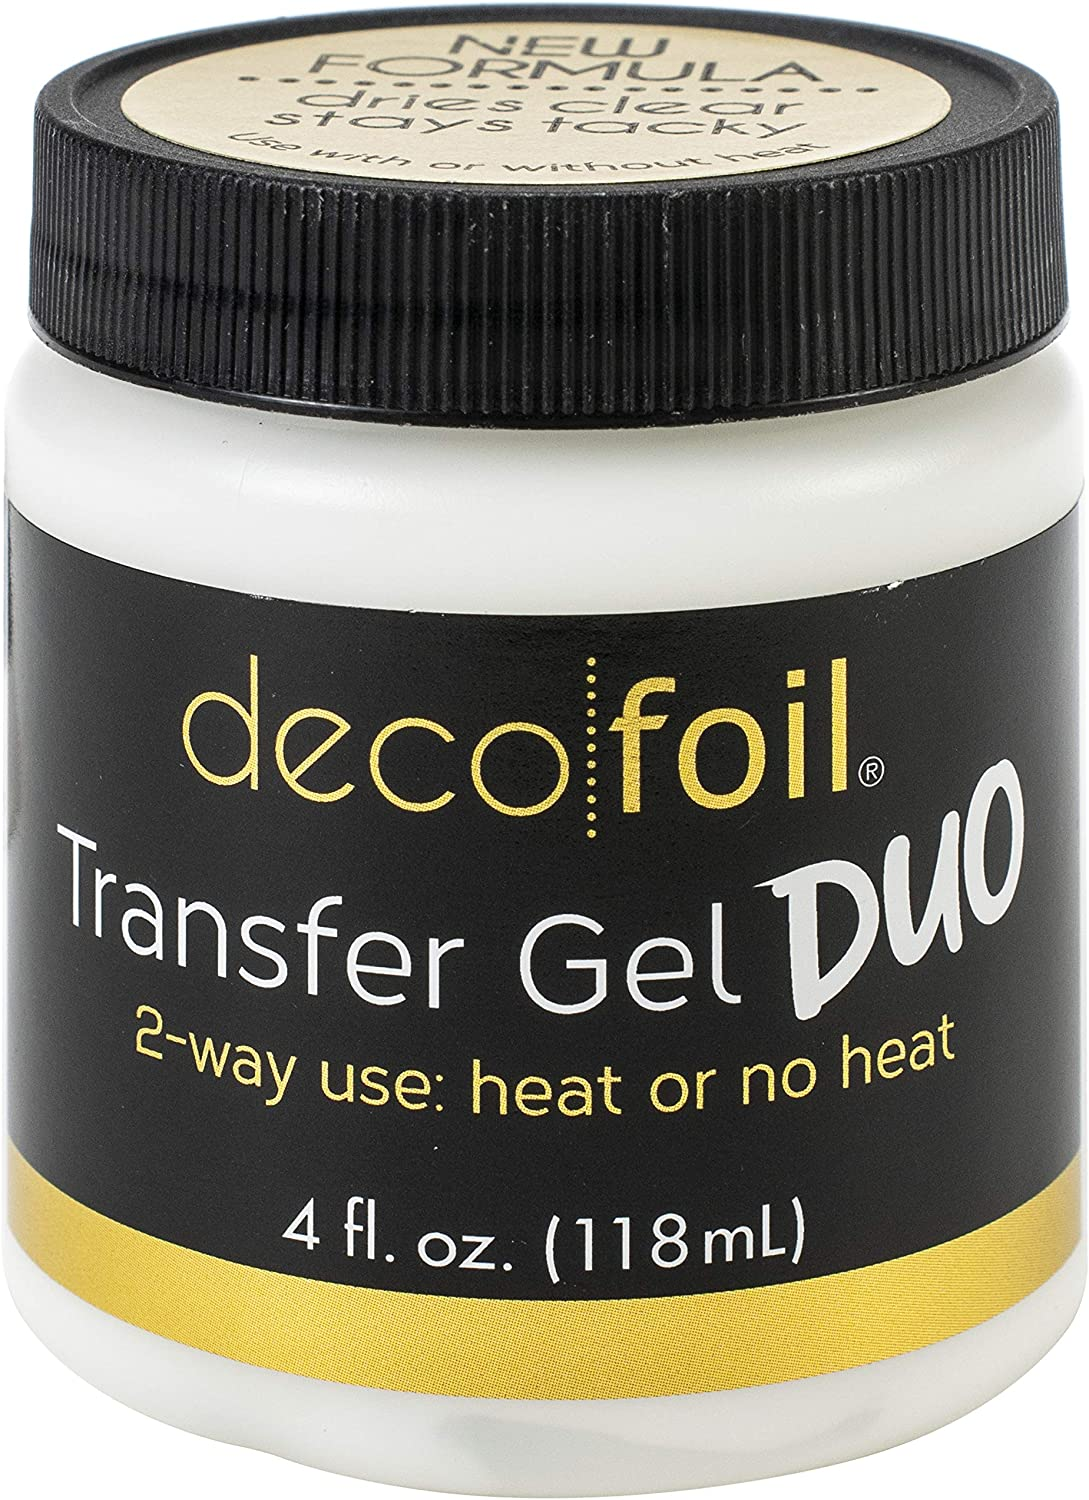 DECOFOIL TRANSFER GEL DUO